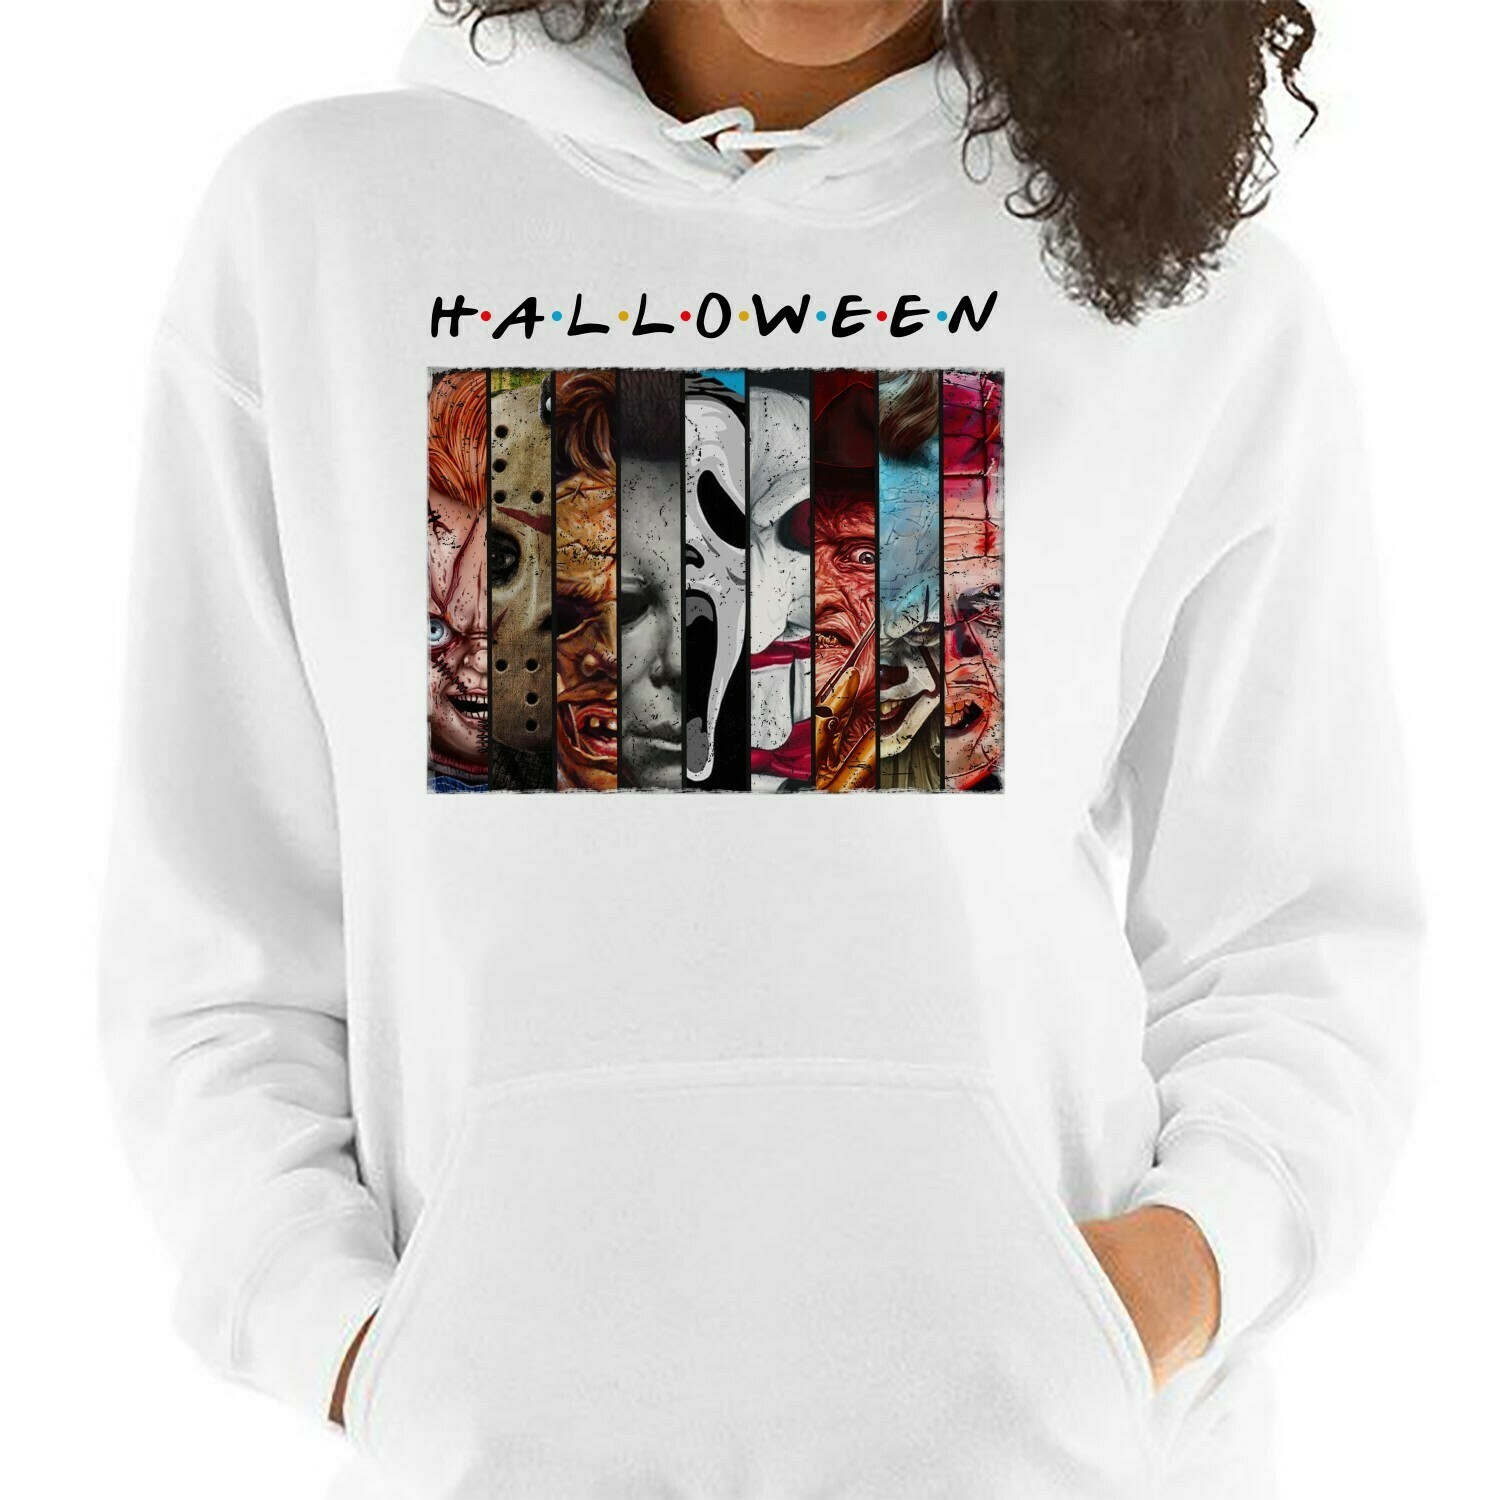 Halloween Horror Character Squad Friday The 13th Gifts For Fan Movie Villains Halloween Horror Movie Mashup Squad Not So Scary T-Shirt Long Sleeve Sweatshirt Hoodie Jolly Family Gifts